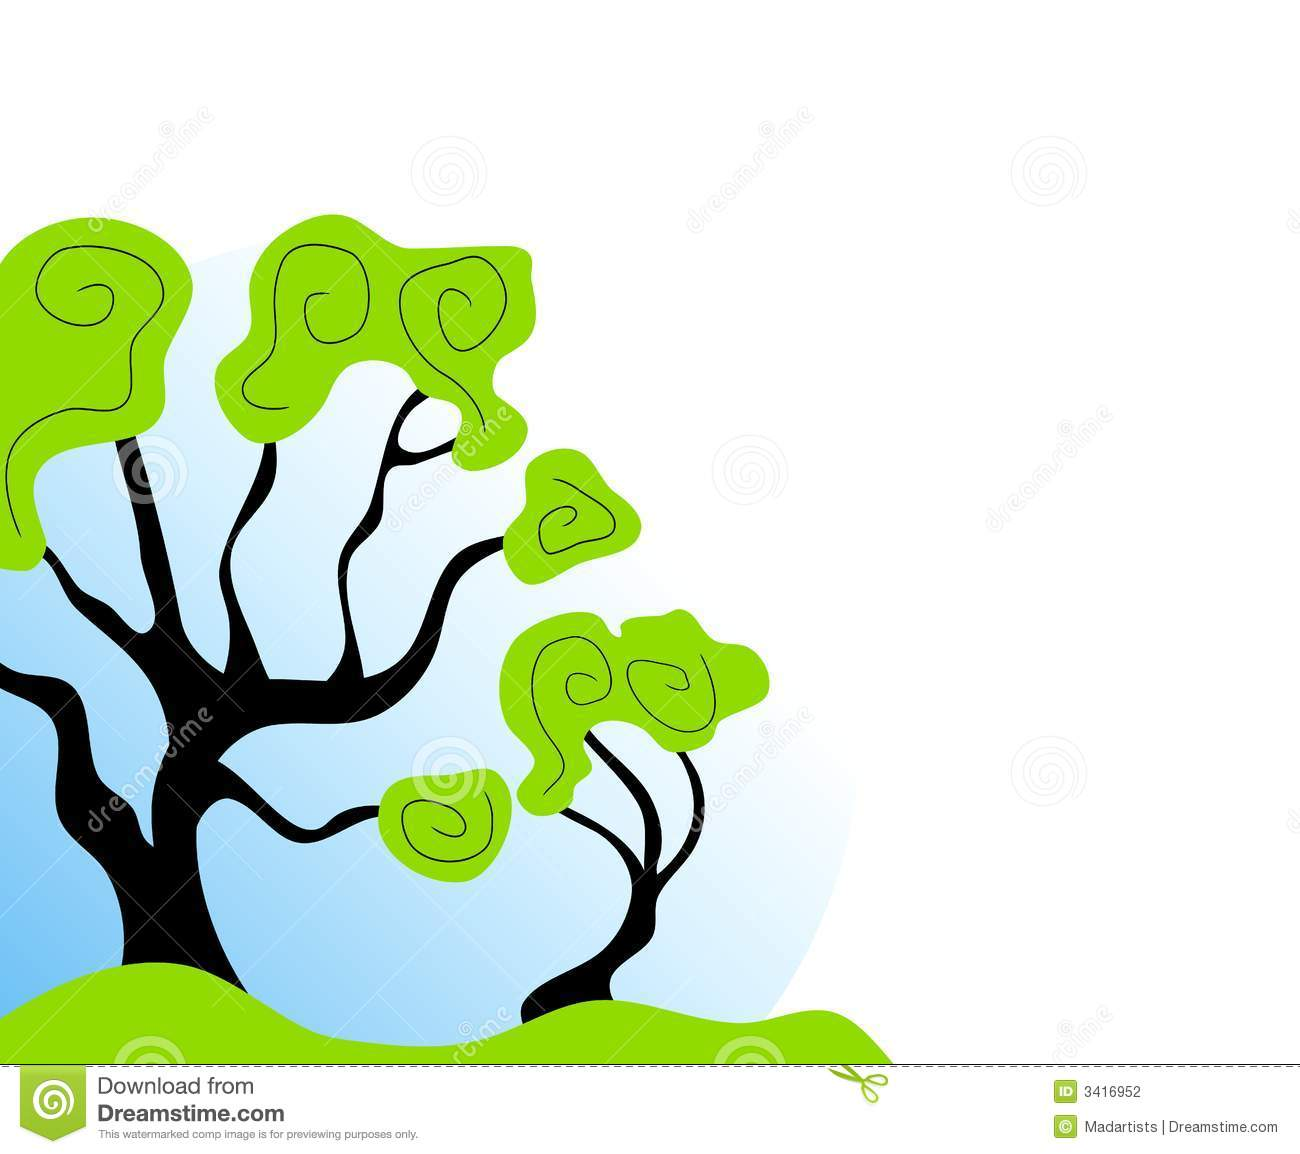 Green abstract clipart hd.